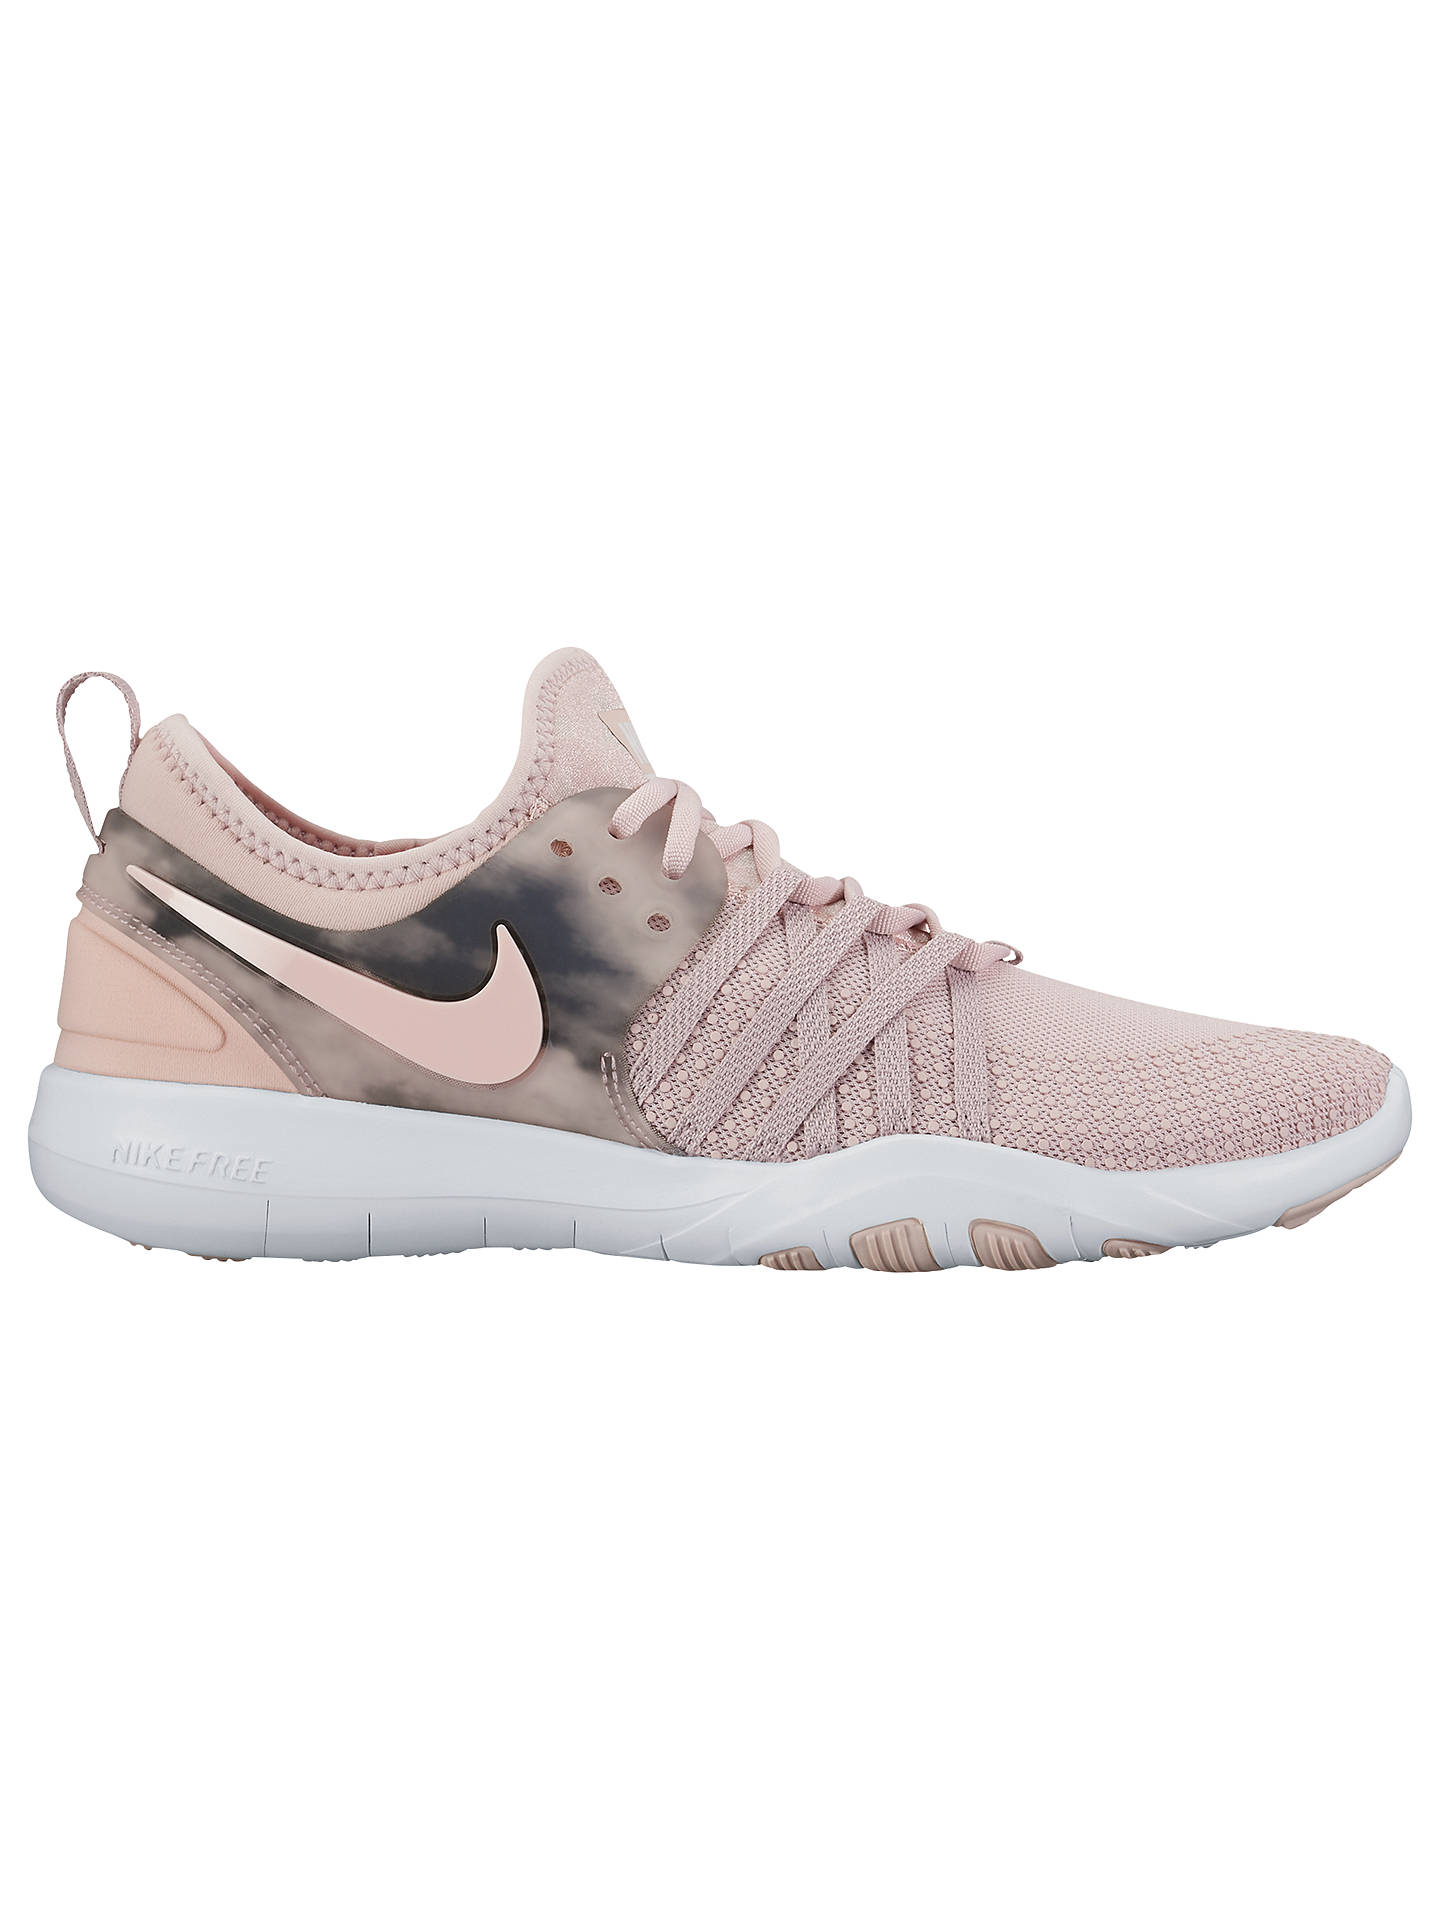 Shop Pink Nike Free TR 7 Training Shoe for Womens by Nike | SSS